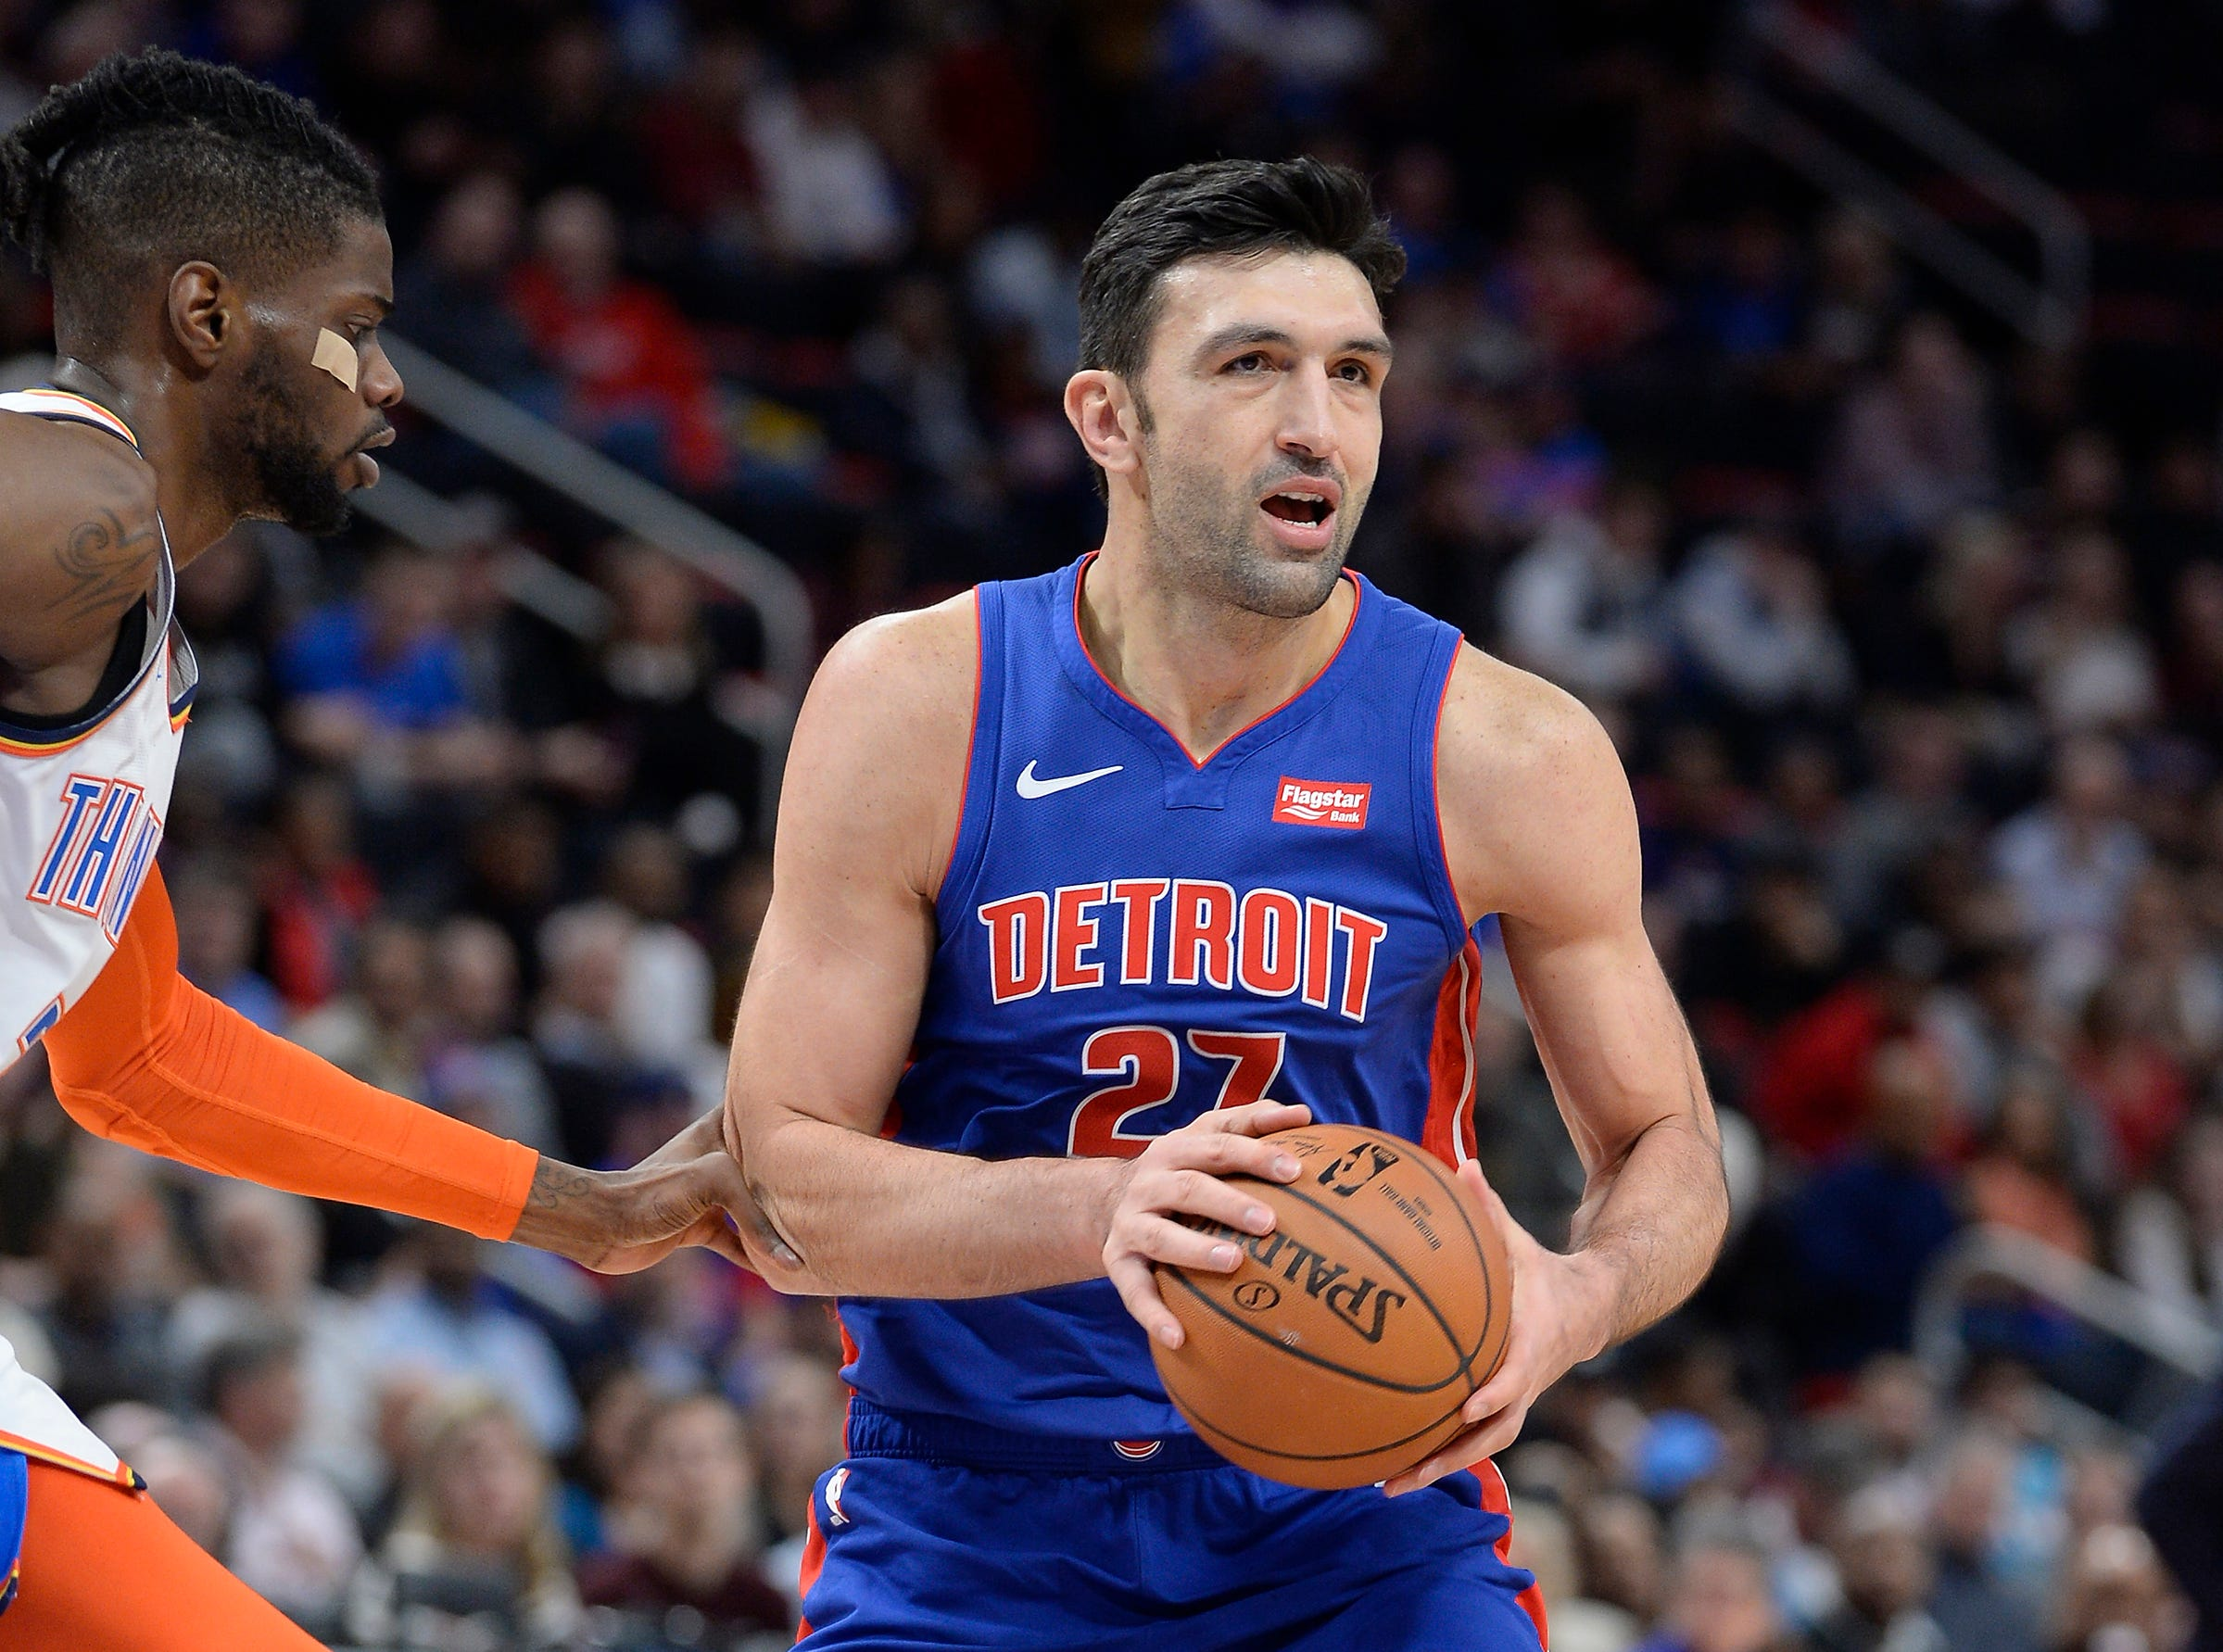 Pistons' ZaZa Pachulia looks to make a pass in front of Thunder's Nerlens Noel in the second quarter.